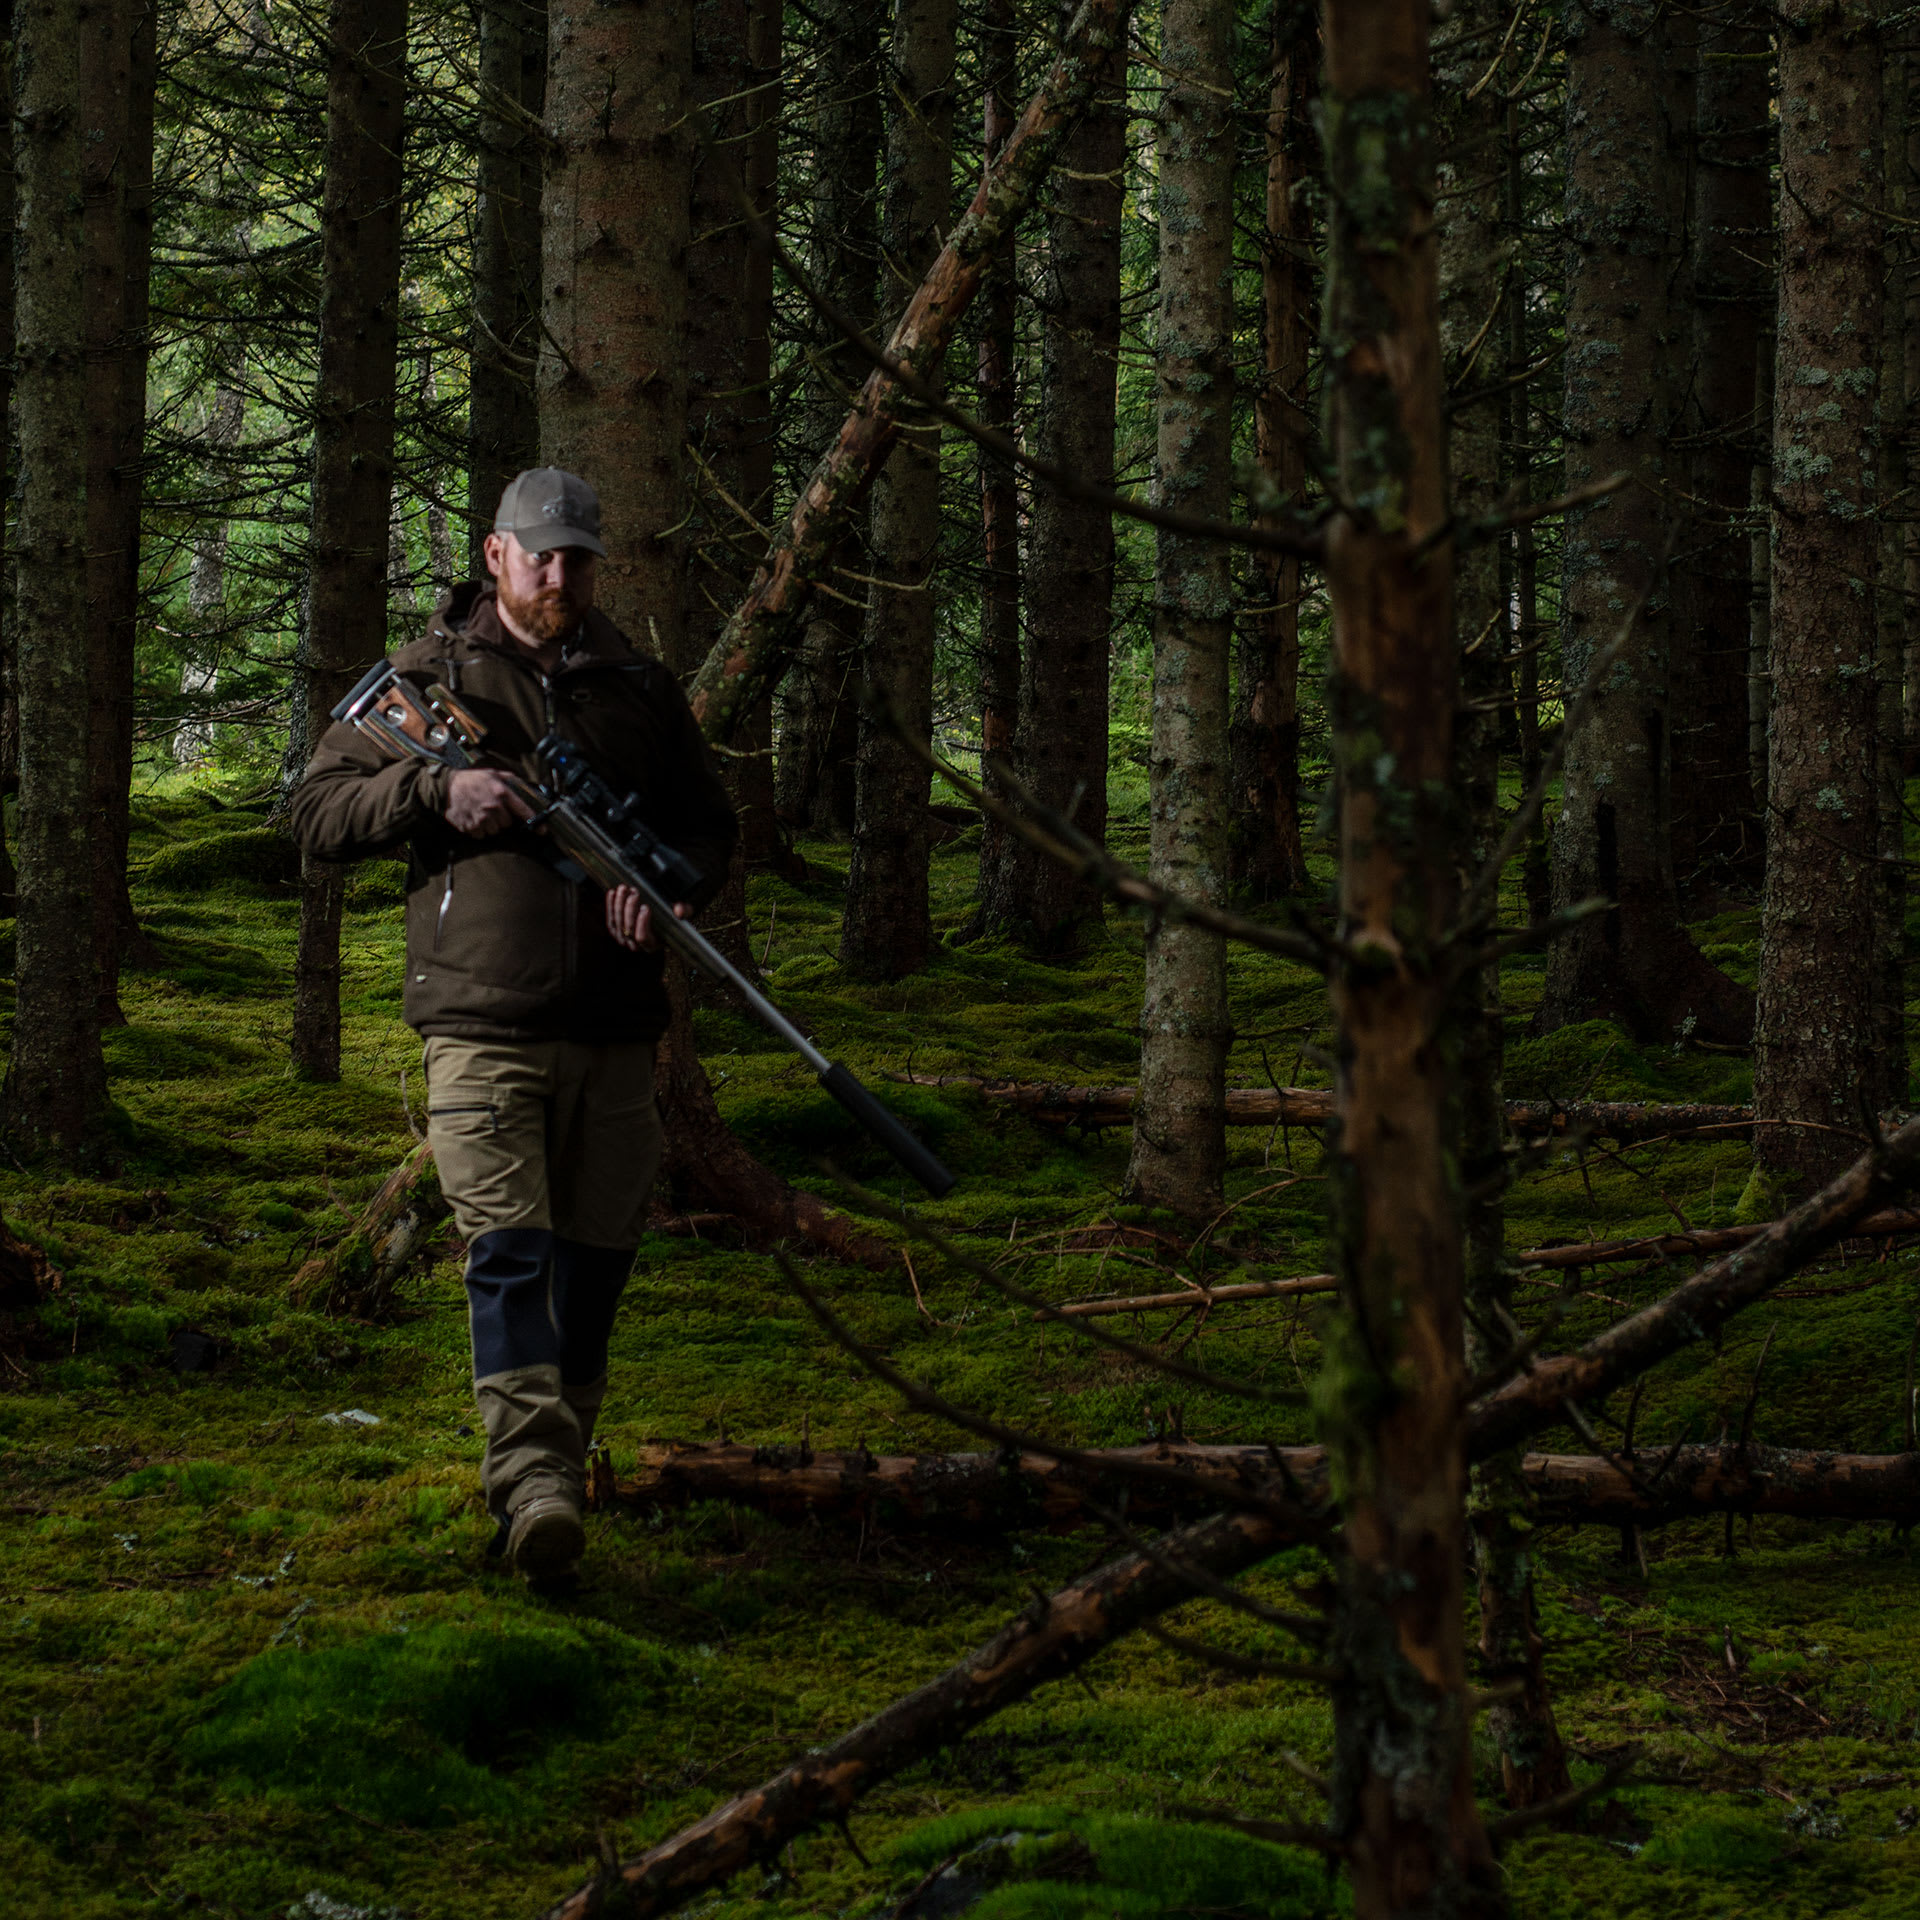 Photo of GRS Oscar Haugen Hunting in the woods of Norway, Hunter stock